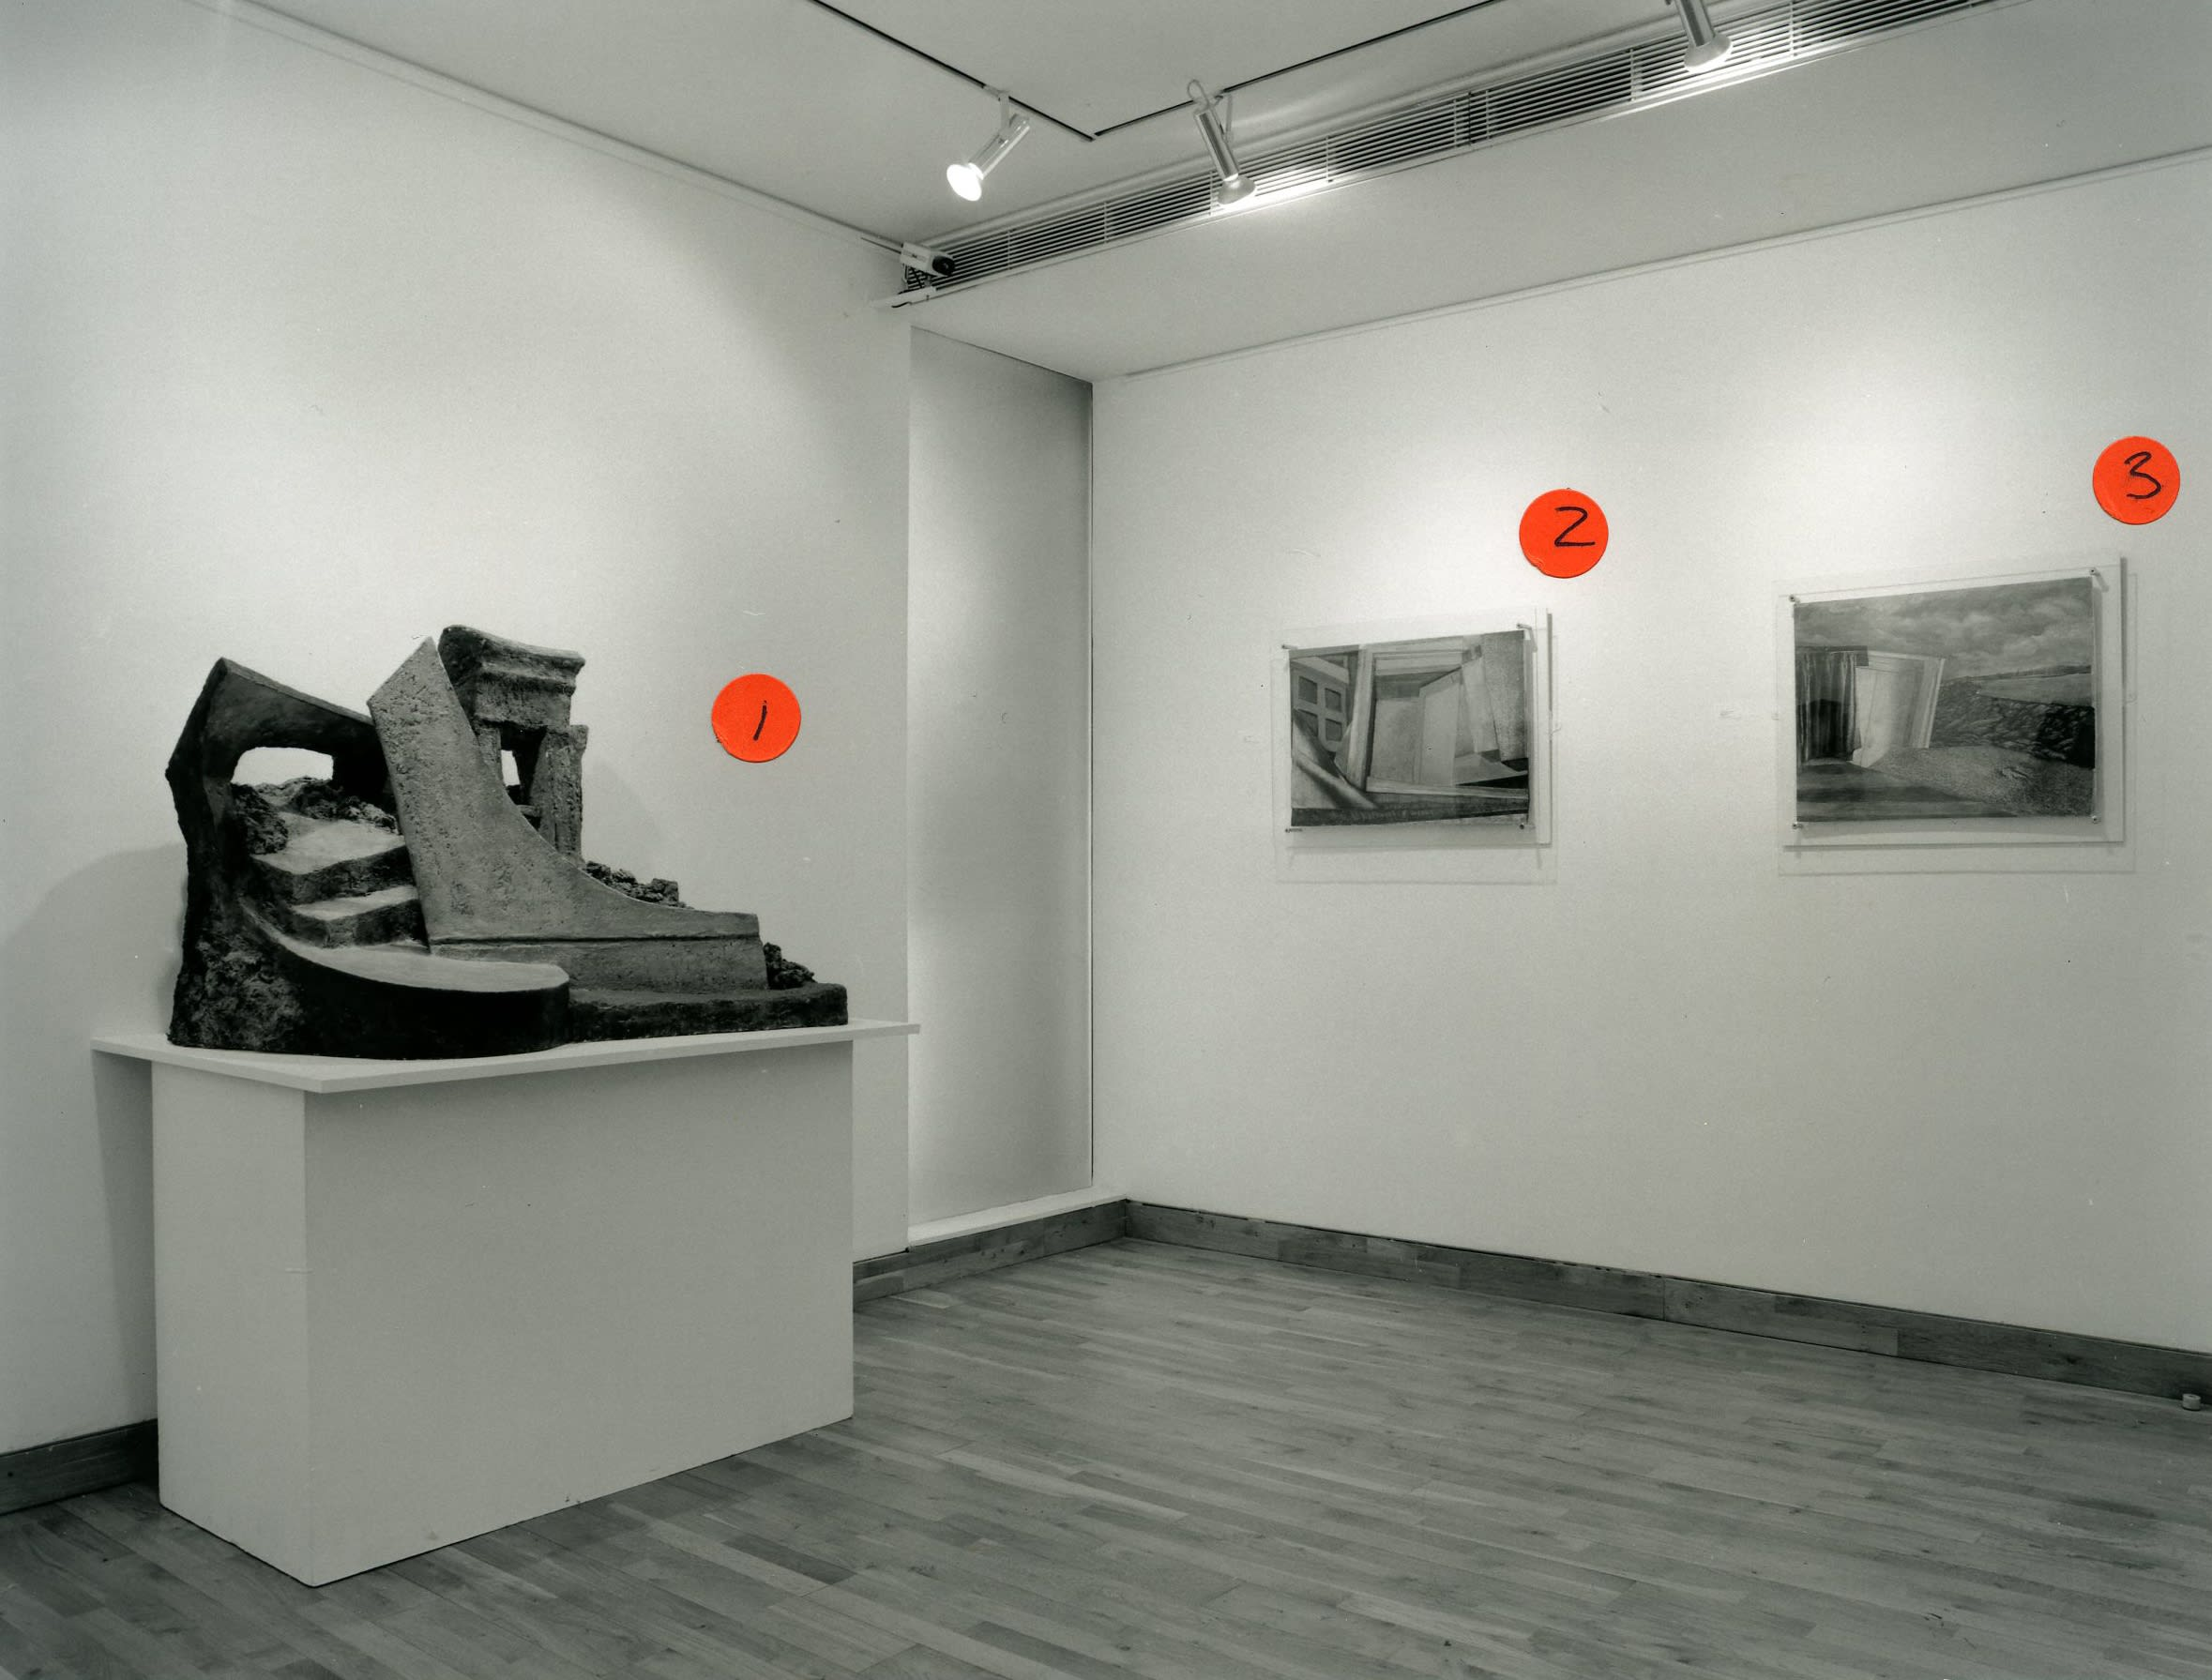 """<span class=""""link fancybox-details-link""""><a href=""""/exhibitions/163/works/image_standalone717/"""">View Detail Page</a></span><p>IVOR ABRAHAMS RA 